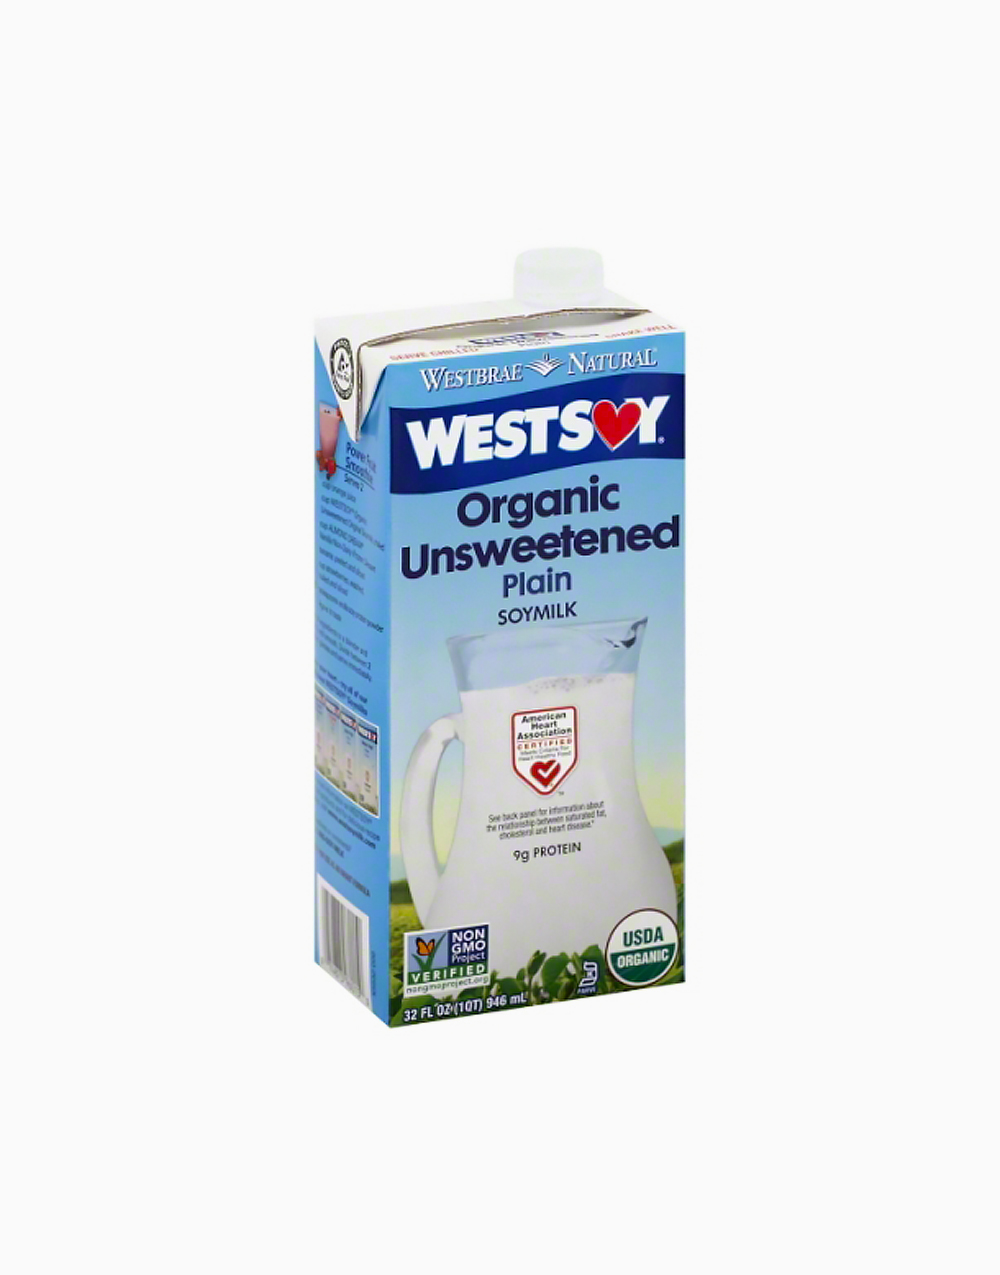 Organic Unsweetened Soy Milk (32oz) by Westsoy